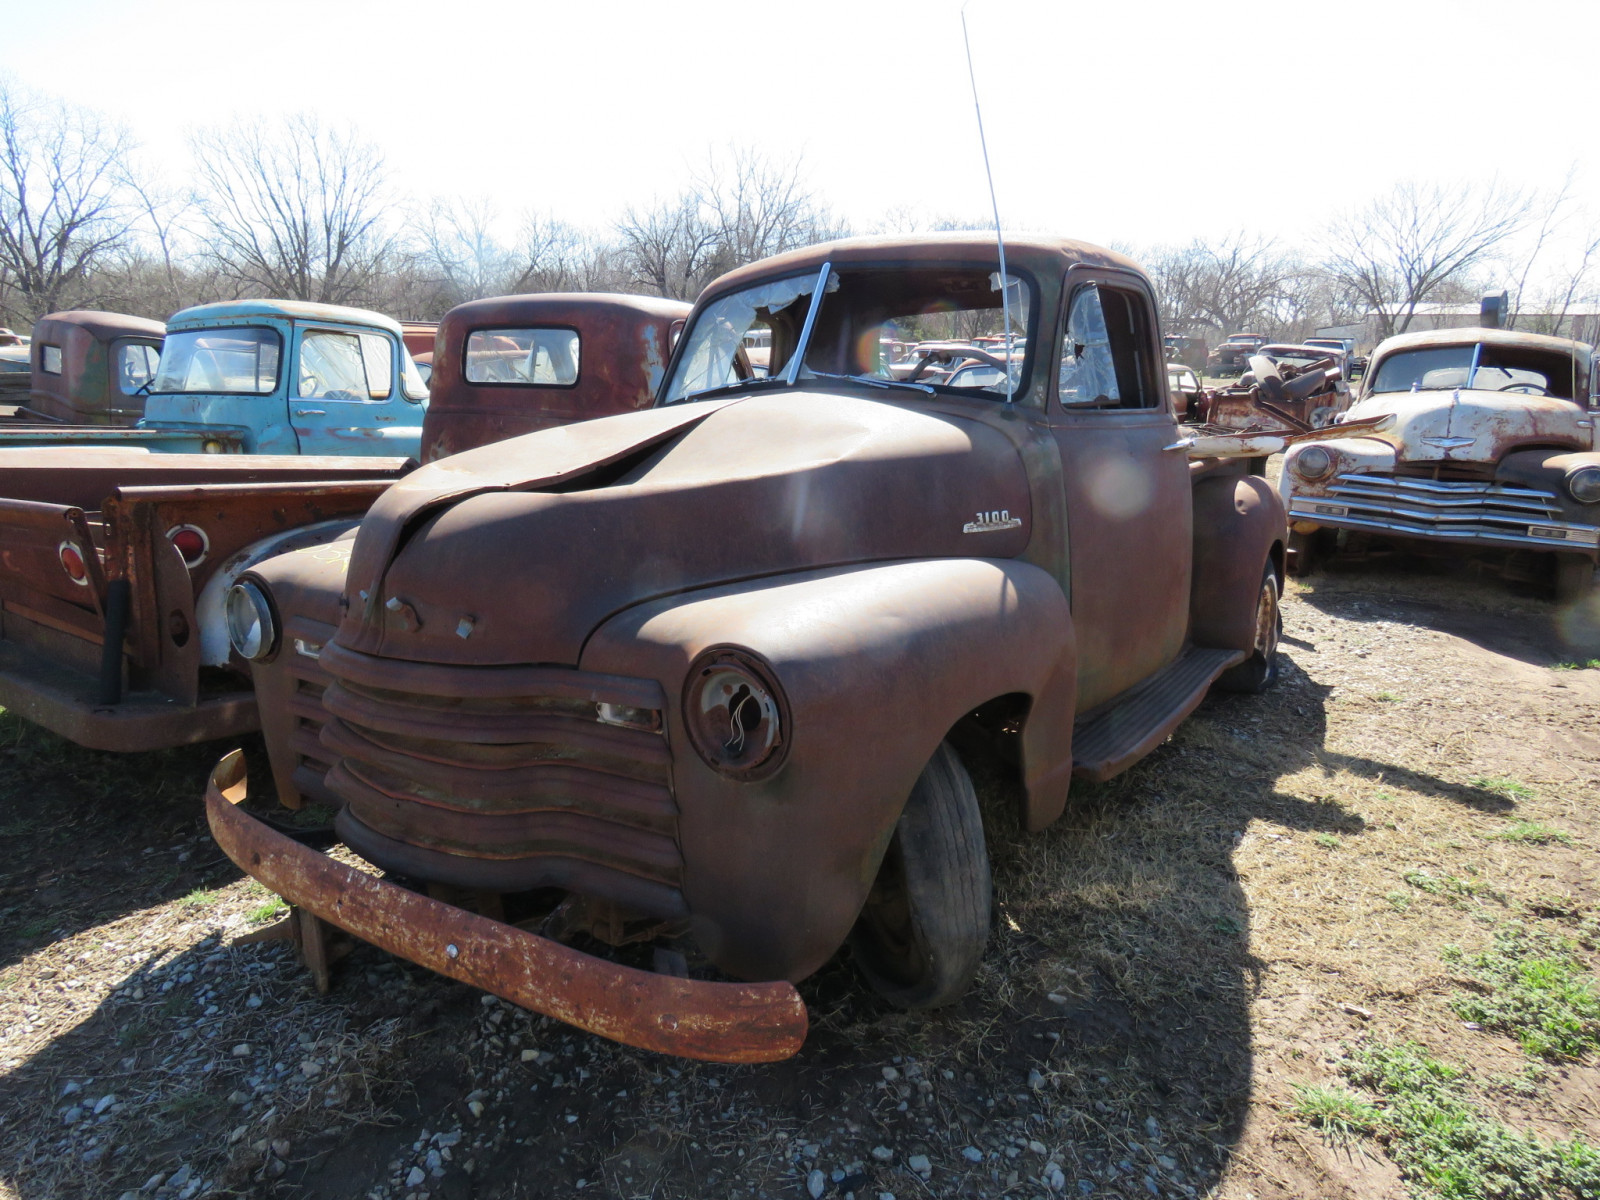 1953 Chevrolet Pickup - Image 2